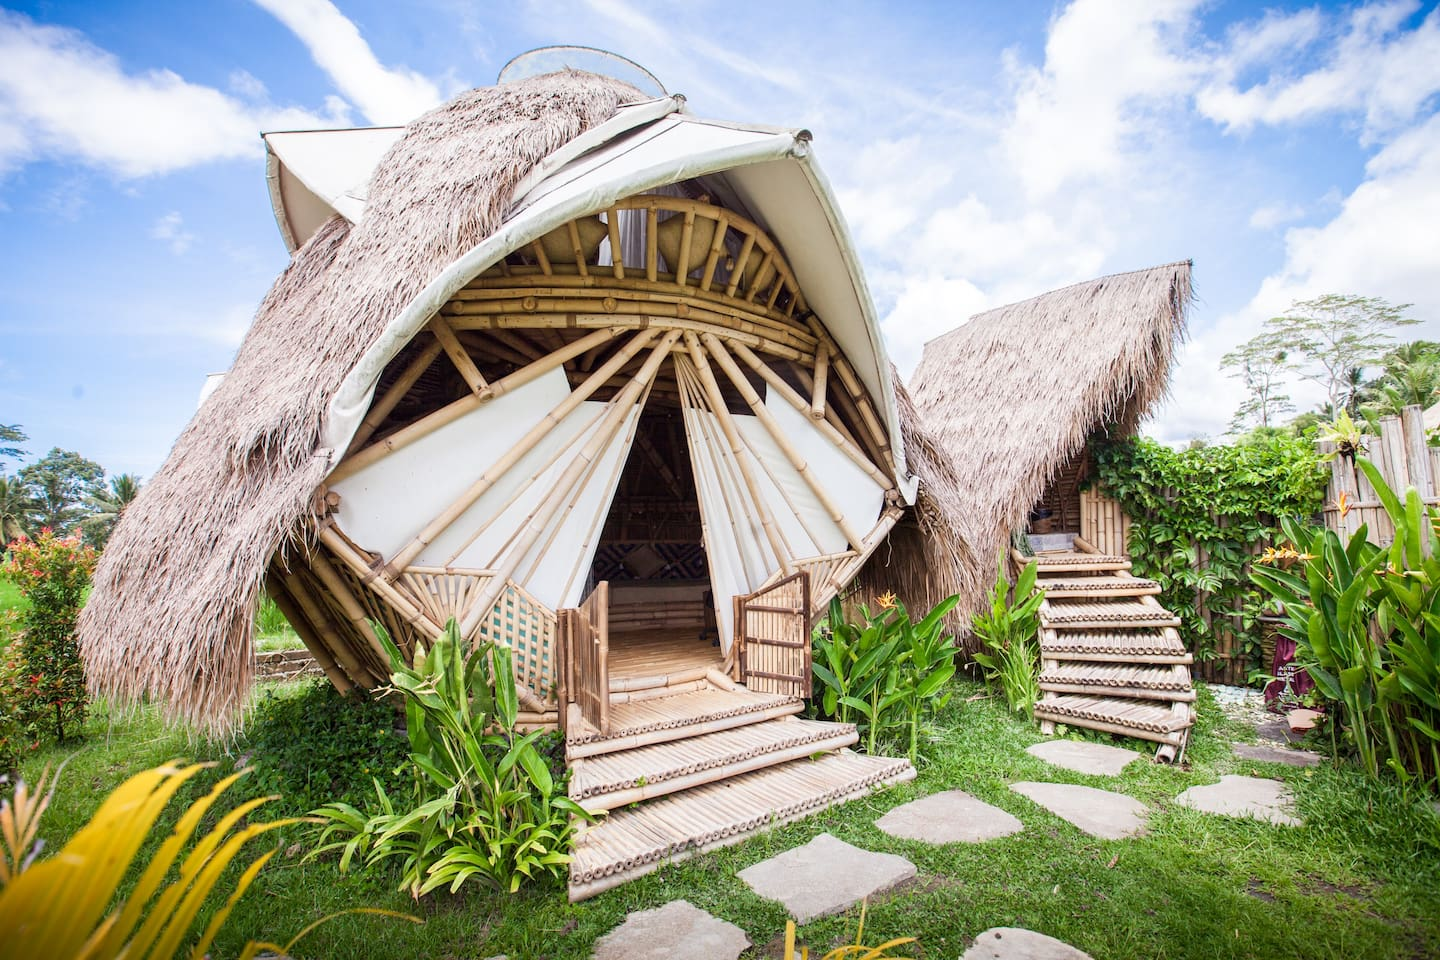 Come stay in the most eco sustainable natural luxury accommodations on the island!